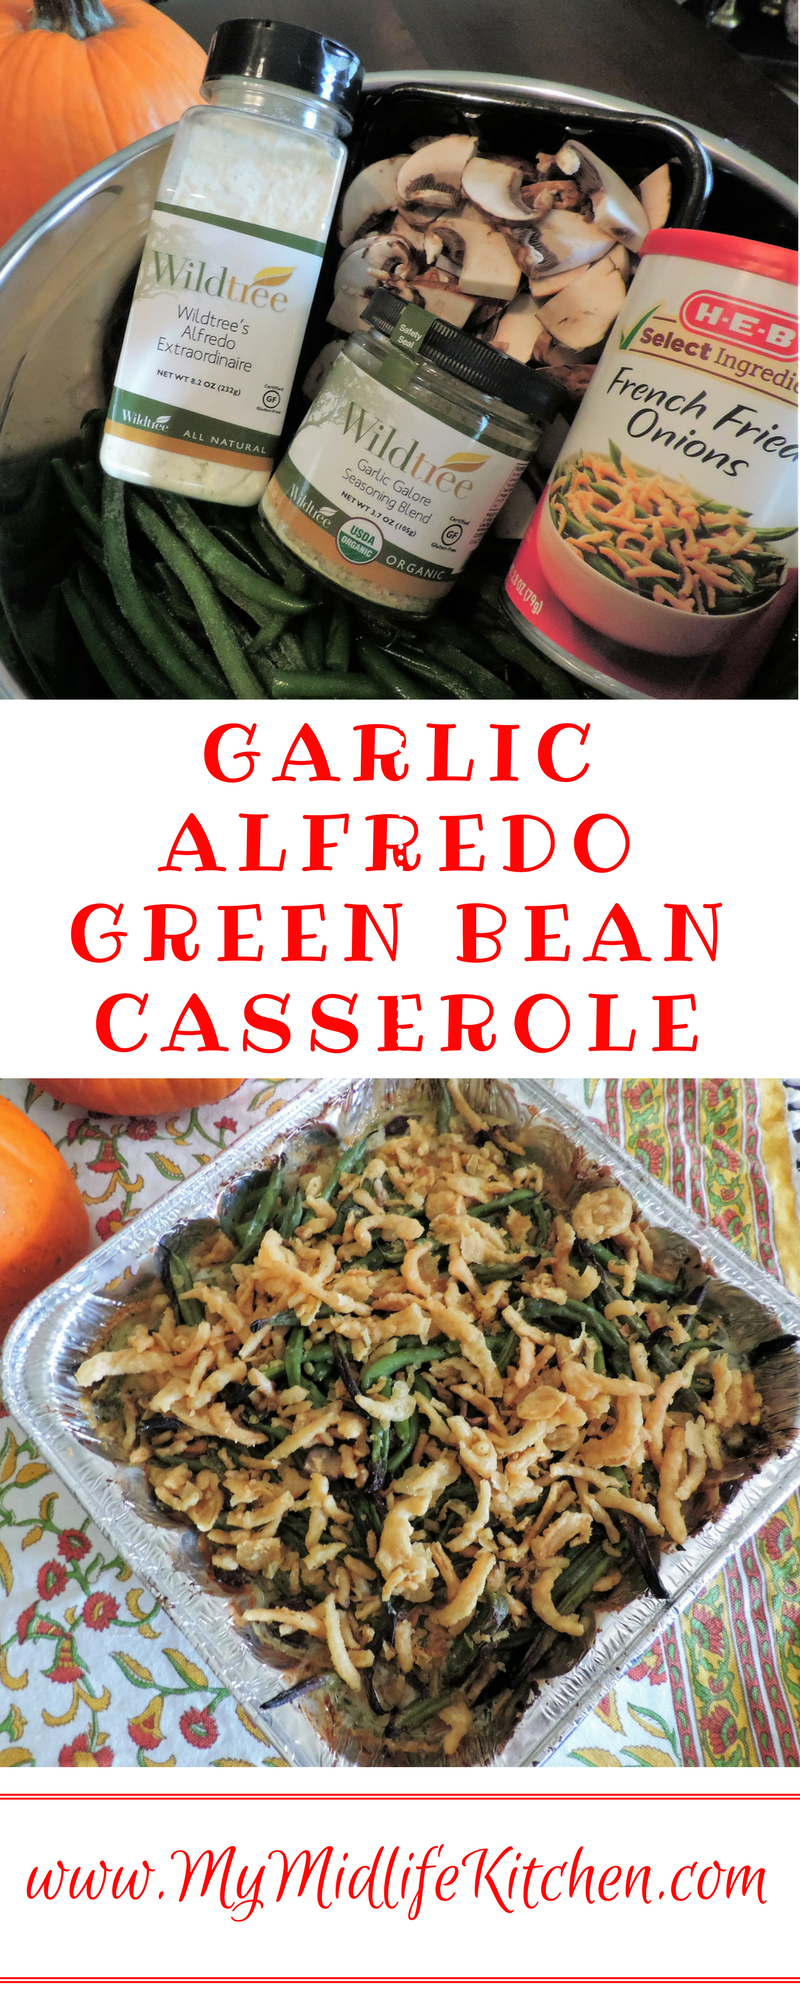 garlic-alfredo-green-bean-casserole